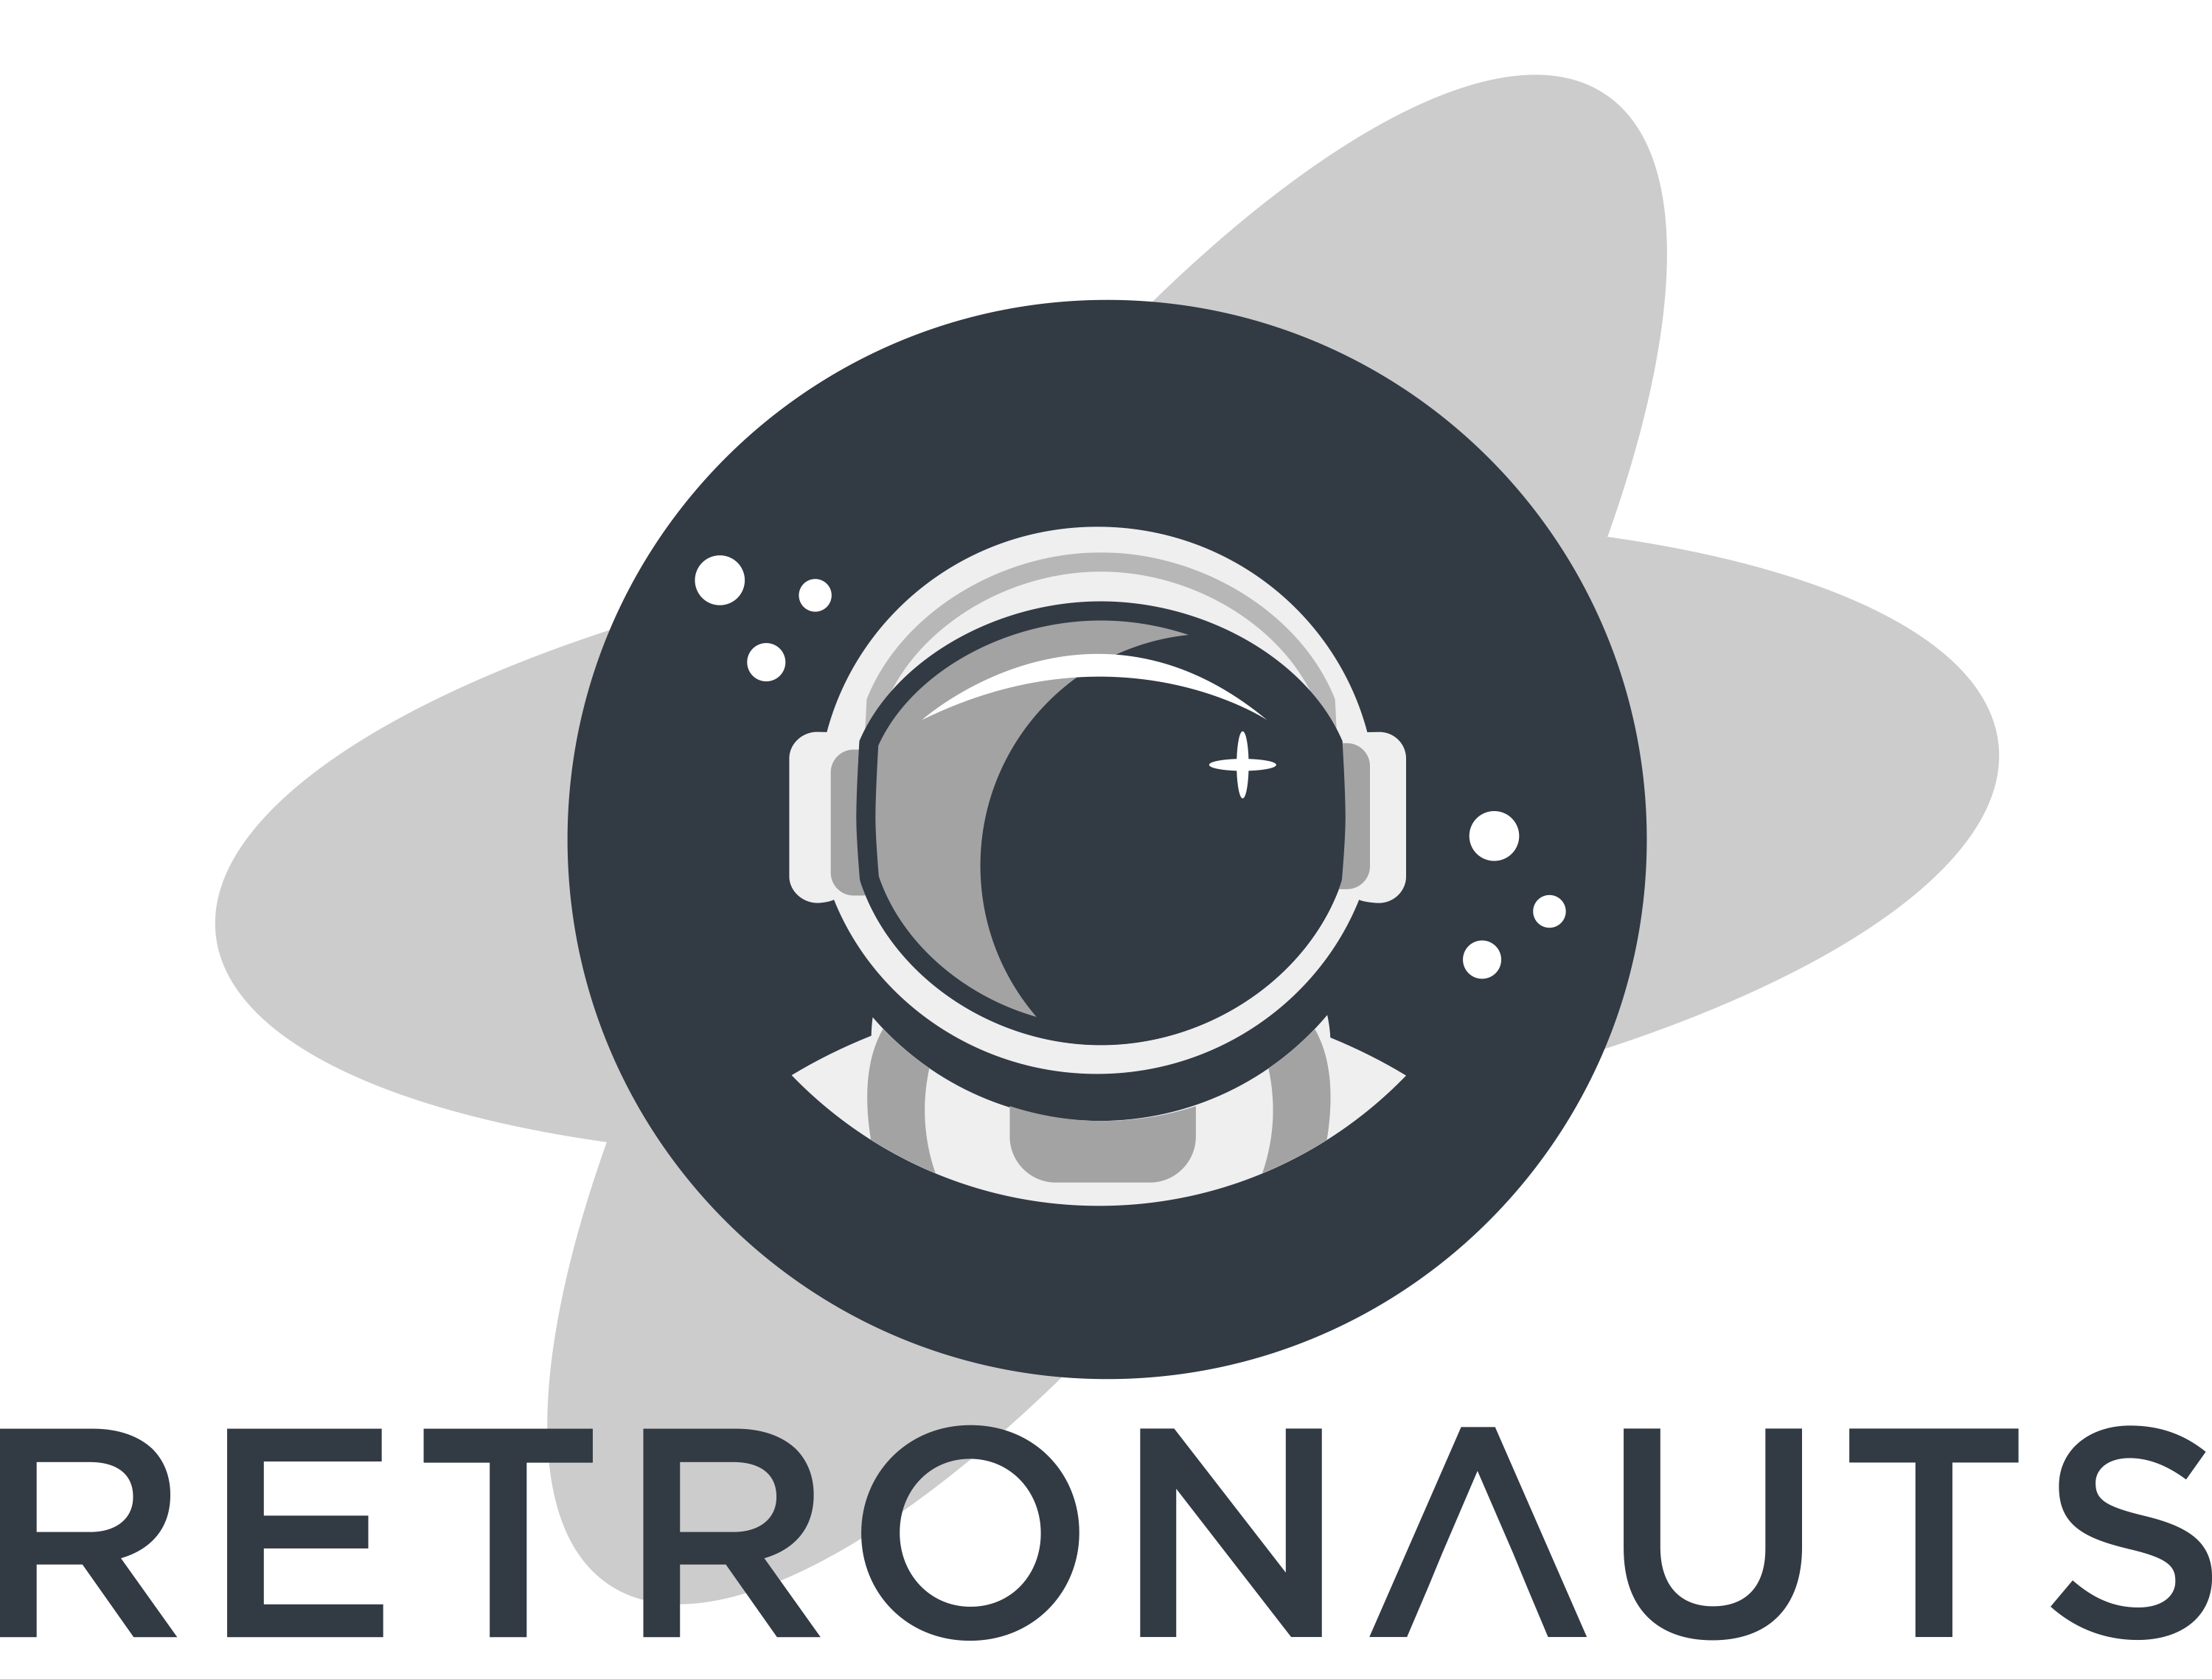 Retronauts Episode 219: Classic console hardware design, Pt. 1